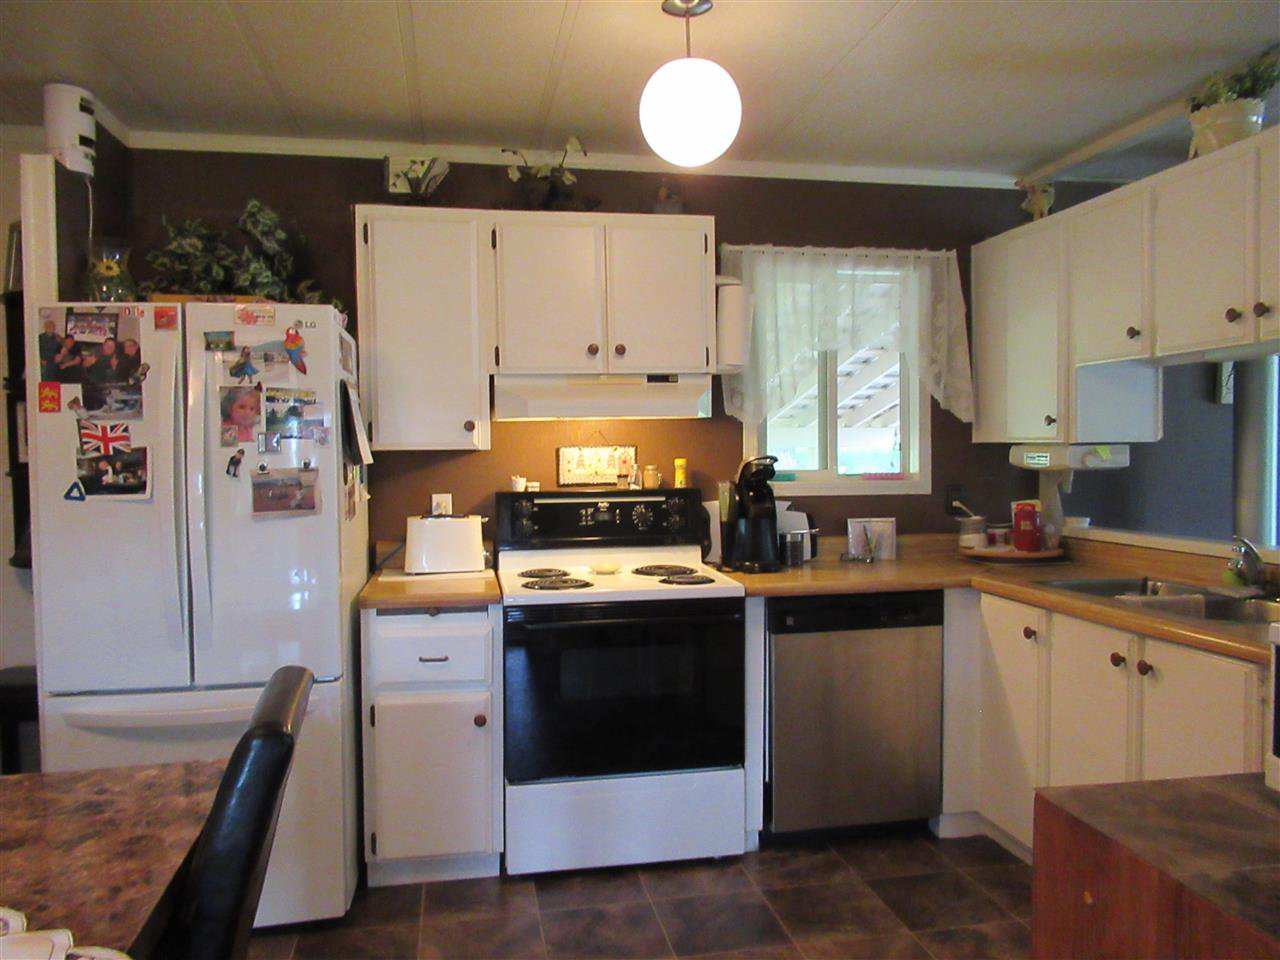 Photo 4: Photos: 1224 DESAUTEL Road in Williams Lake: Williams Lake - Rural East Manufactured Home for sale (Williams Lake (Zone 27))  : MLS®# R2376873